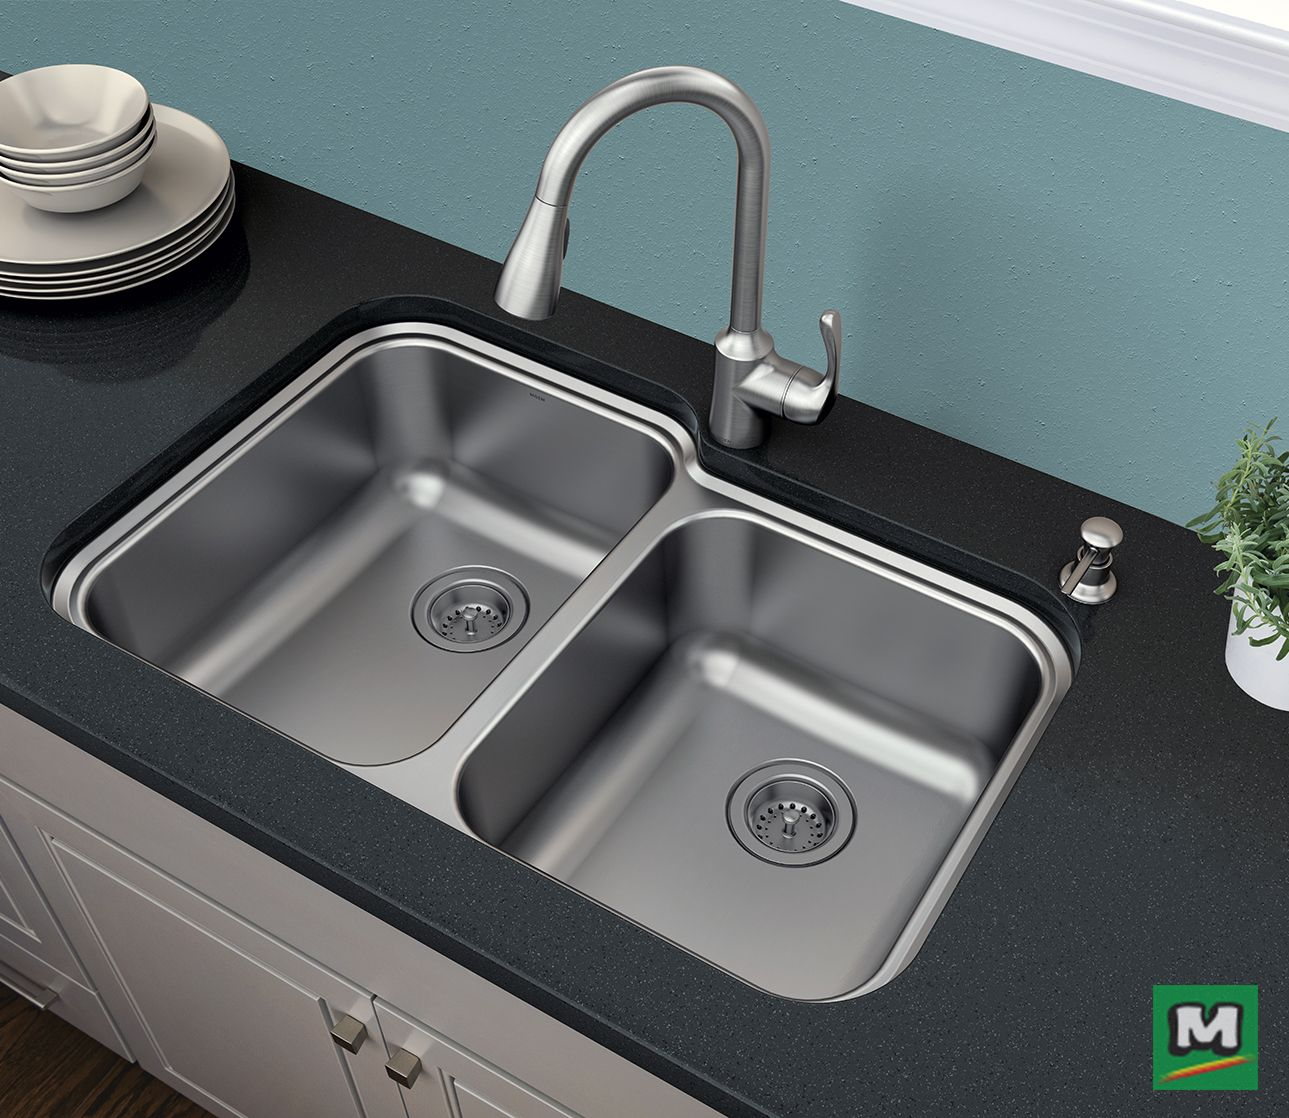 The Moen C Lodi Kitchen Sink Kit Includes A Pull Down Faucet In A Spot Resist Stainless Steel Finish With Matching Soap P Moen Kitchen Sinks Sink Drop In Sink